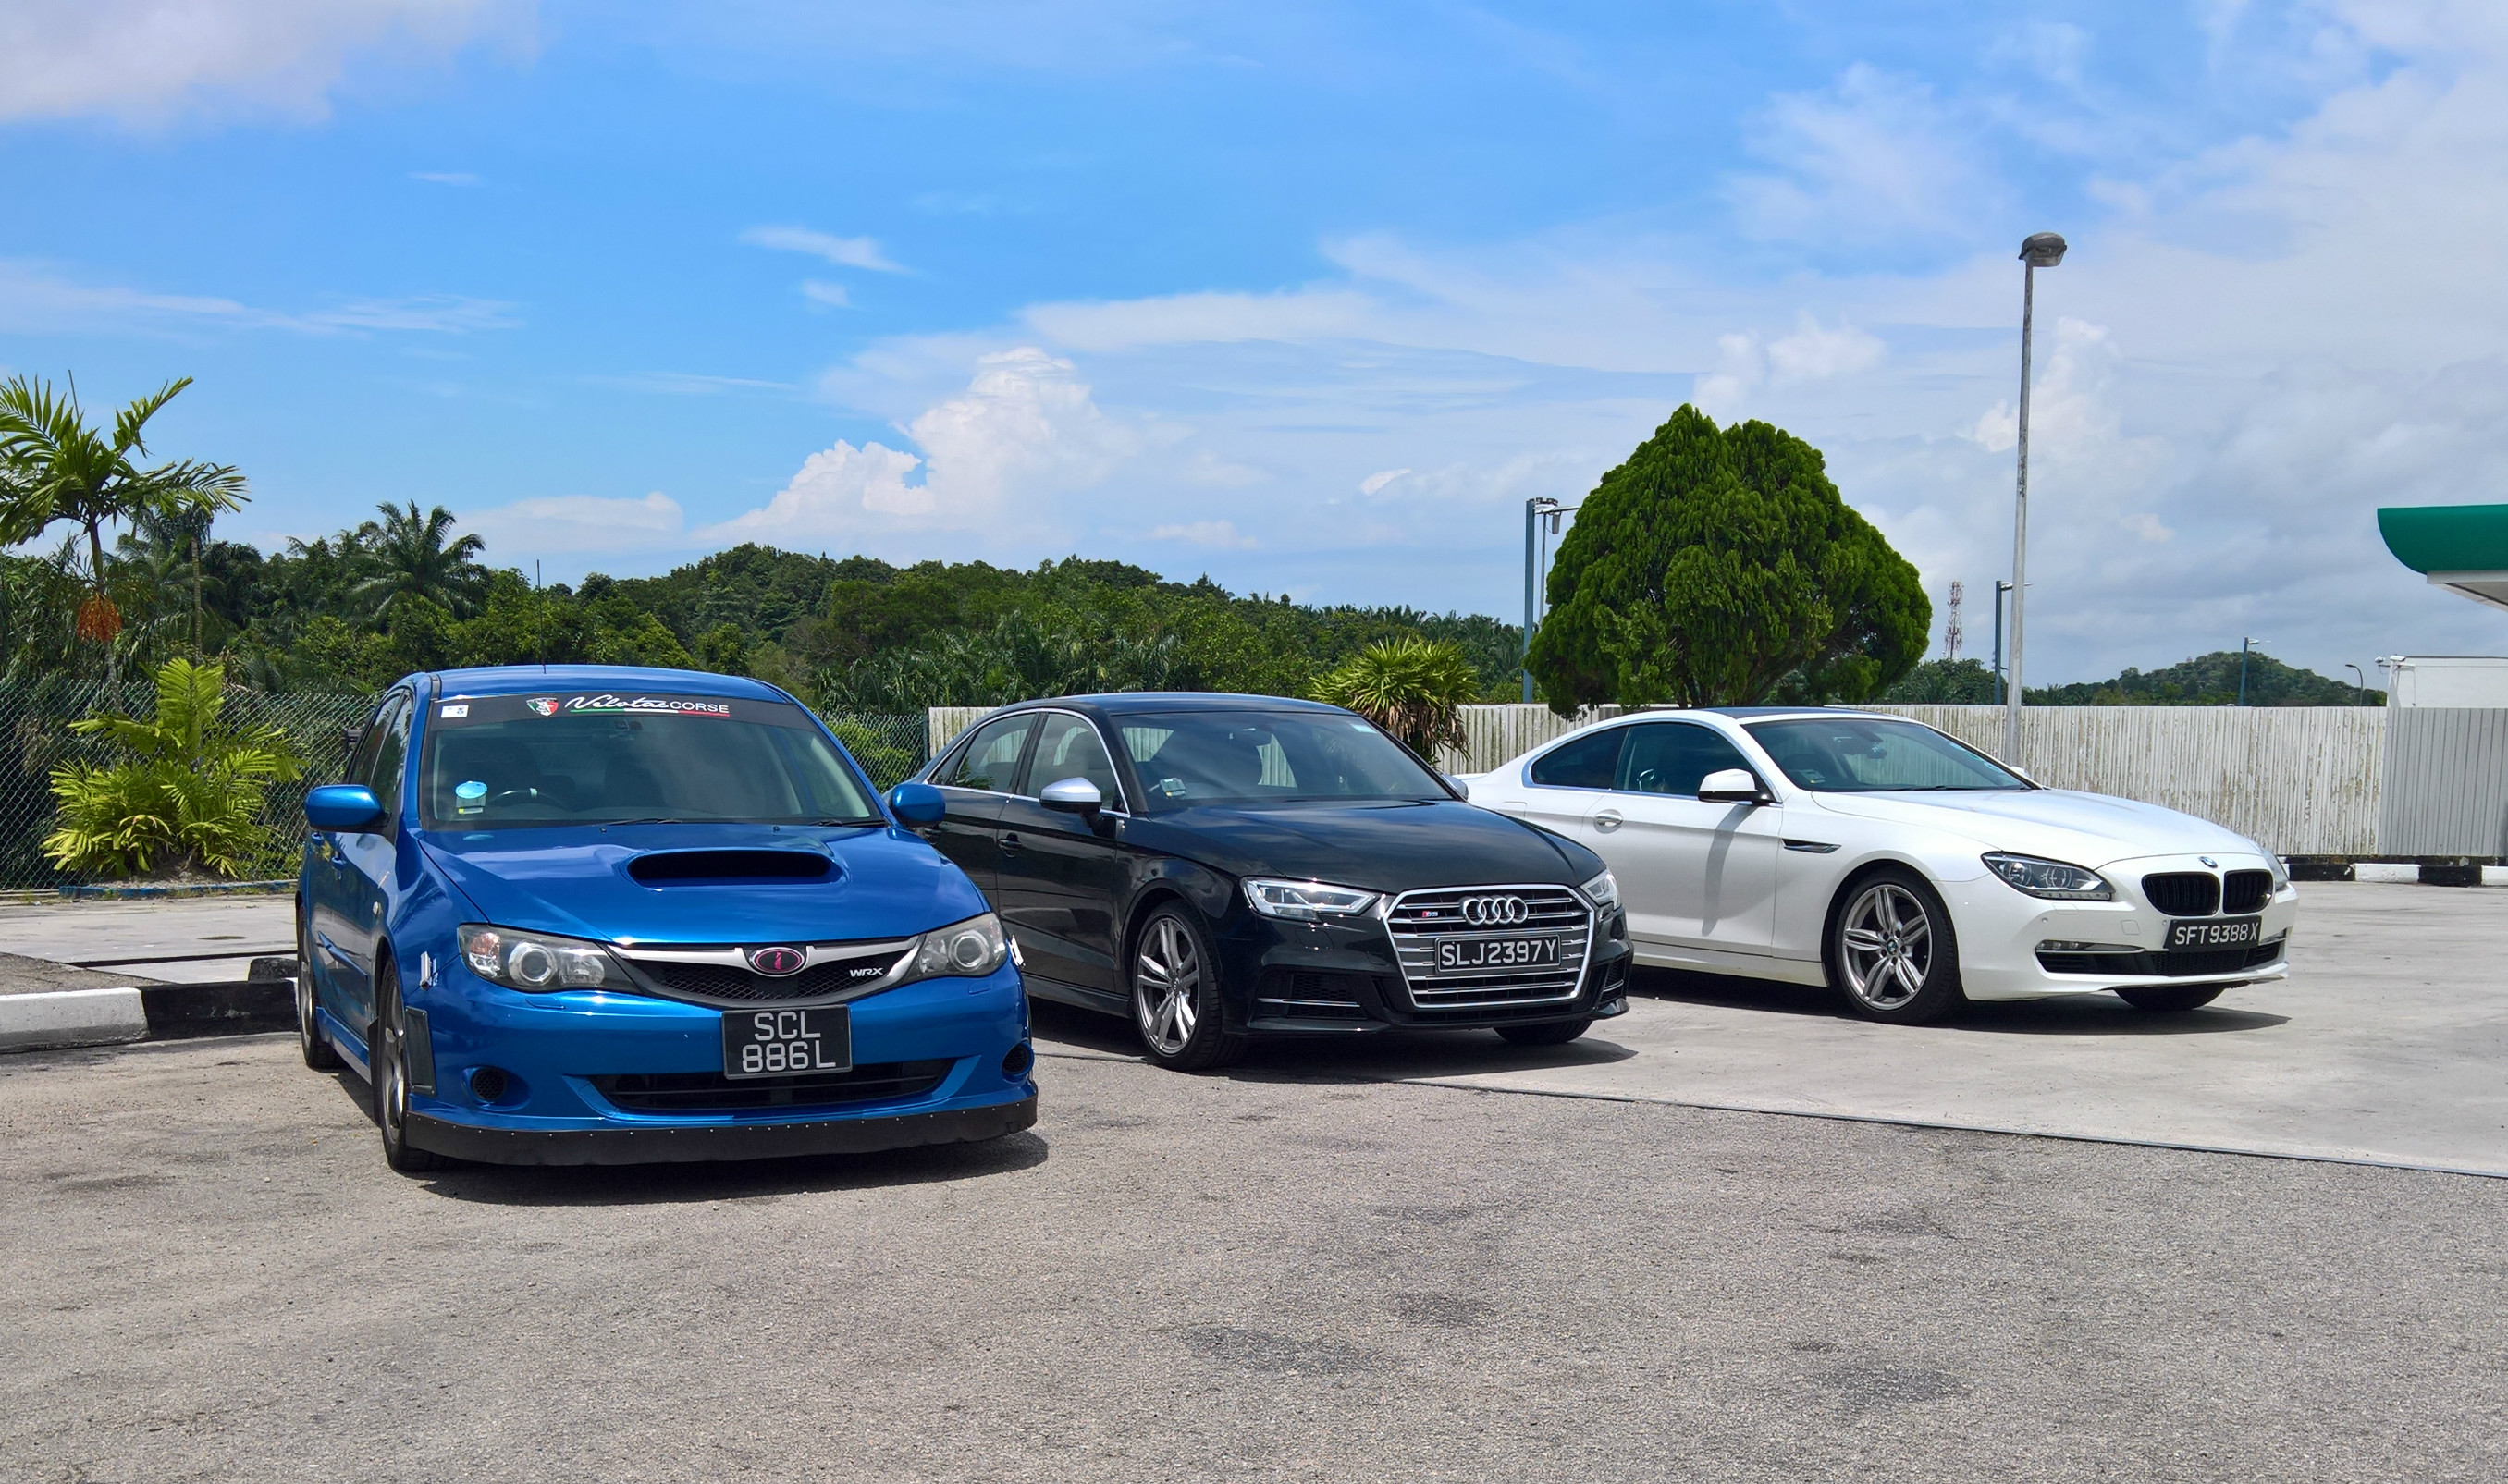 The writer drove up in an Audi S3, with his buddies in a Subaru WRX and a BMW 650i, and rediscovered the joys of an early-morning B-road blast in Malaysia.